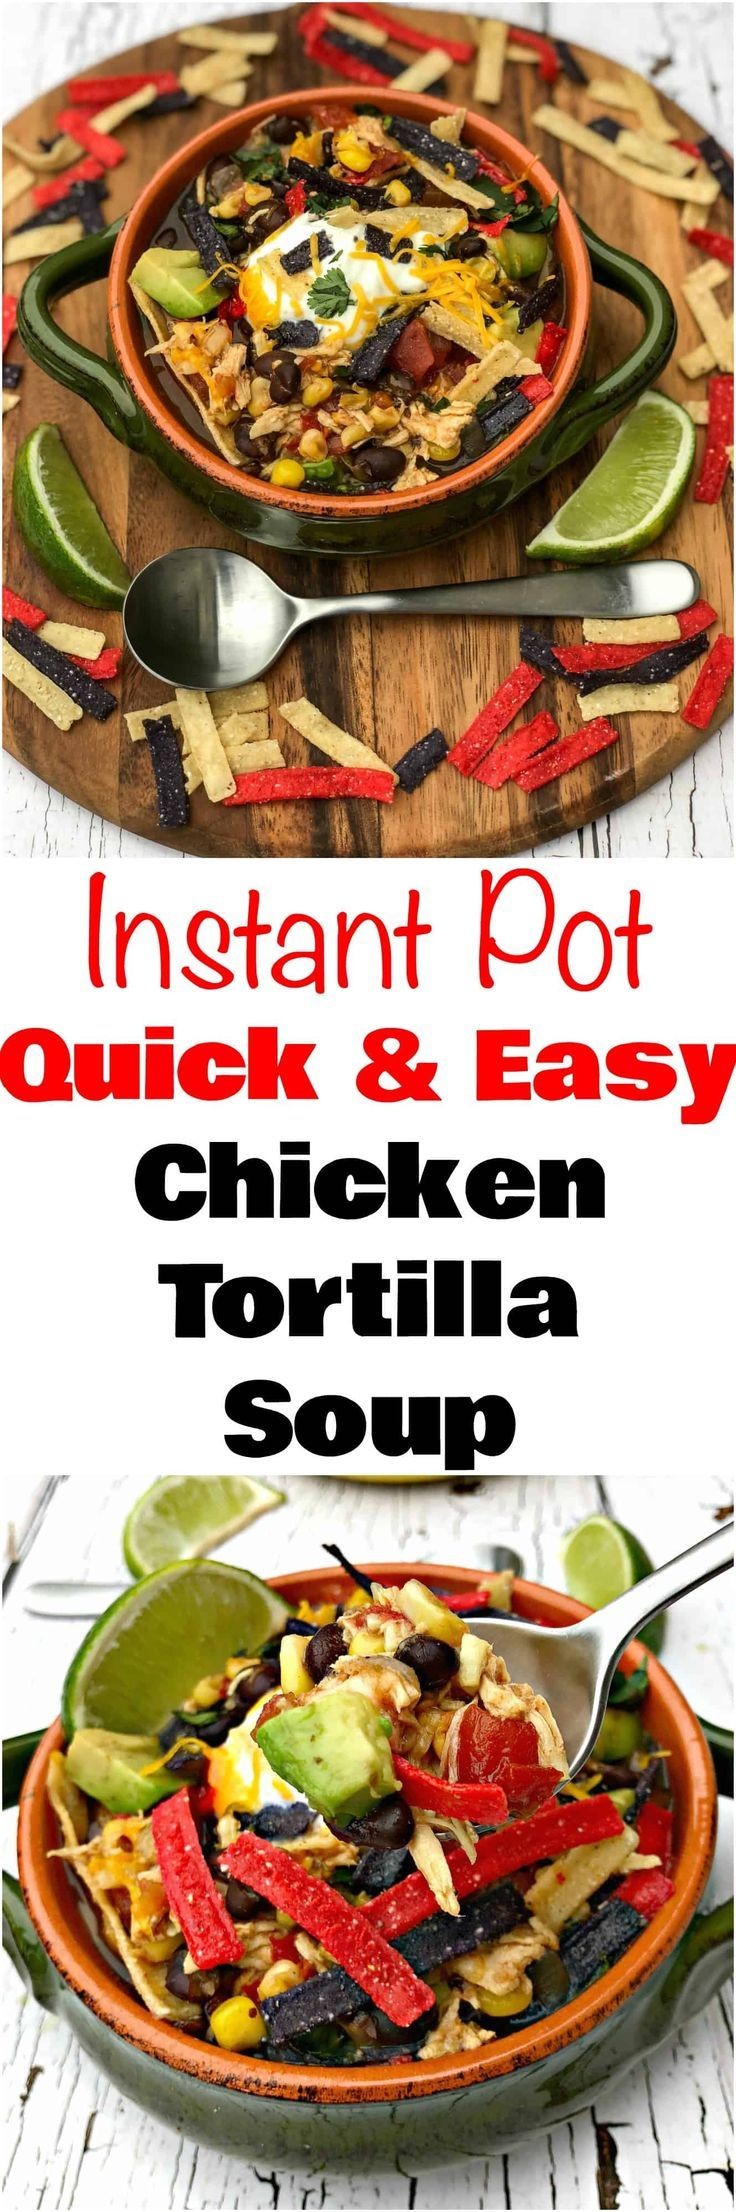 Instant Pot Chicken Tortilla Soup is a quick and easy 20-minute pressure cooker recipe